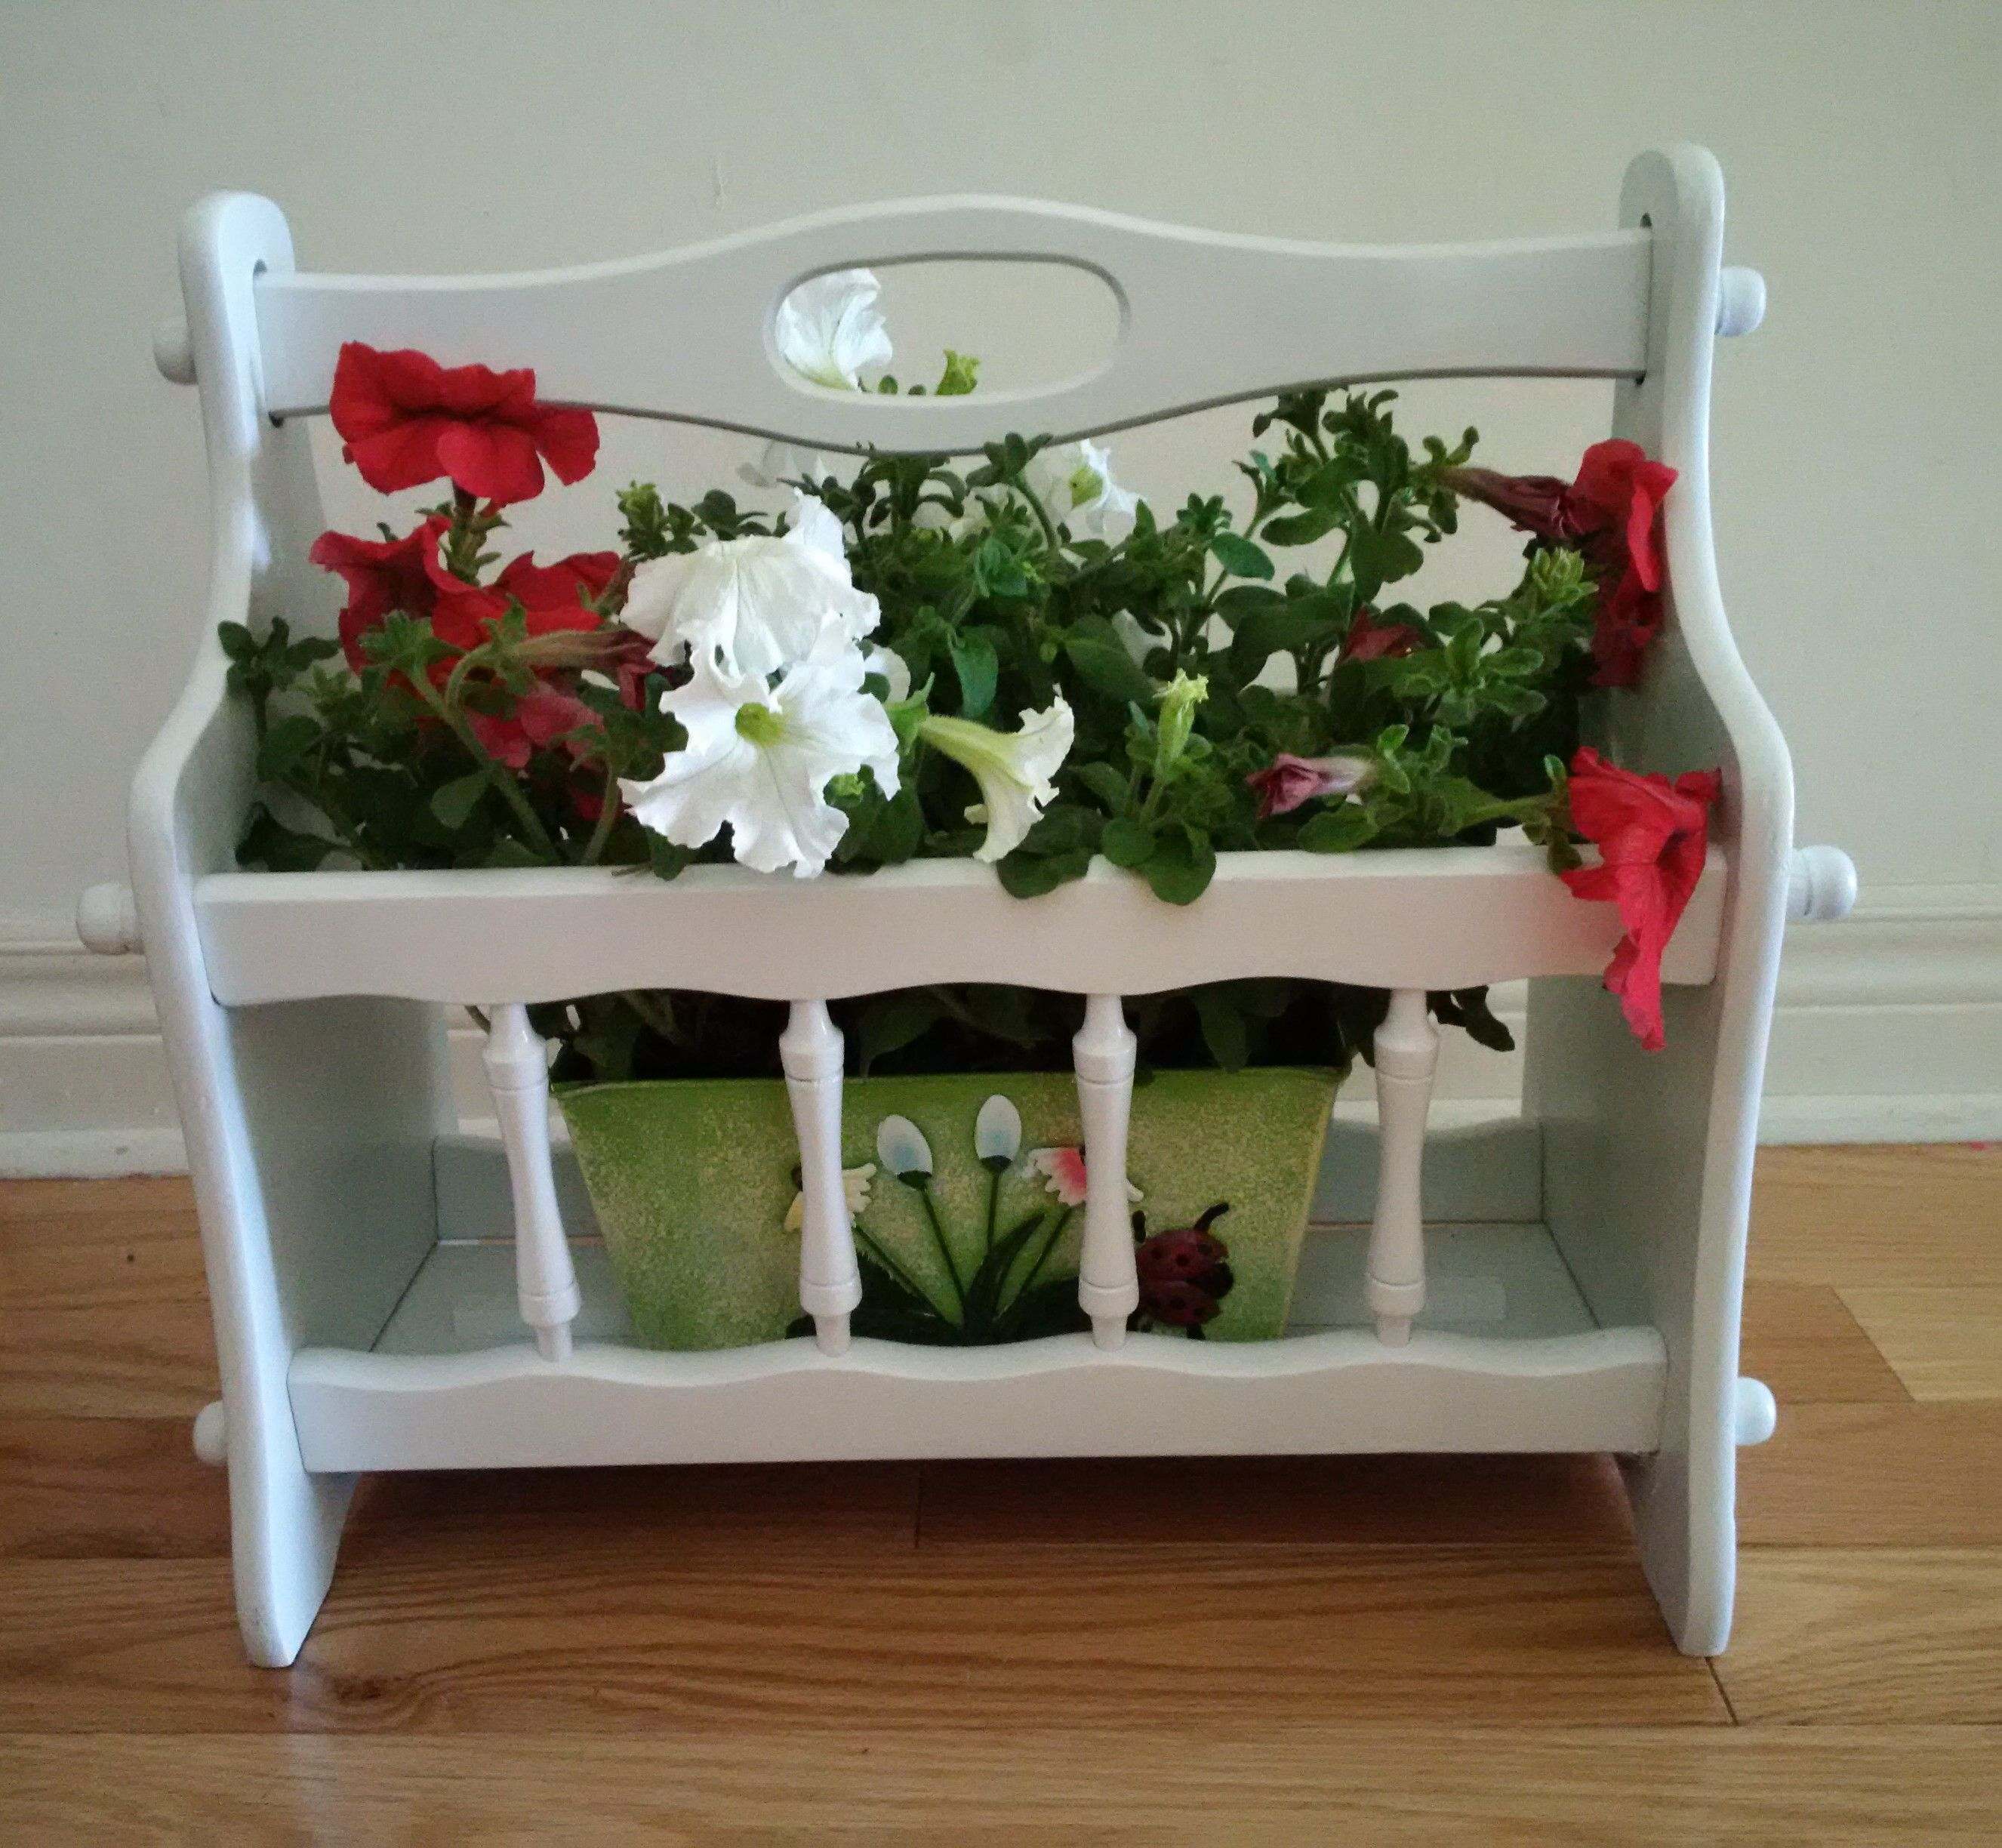 painted an old wood magazine rack and reused it as an outdoor flower planter